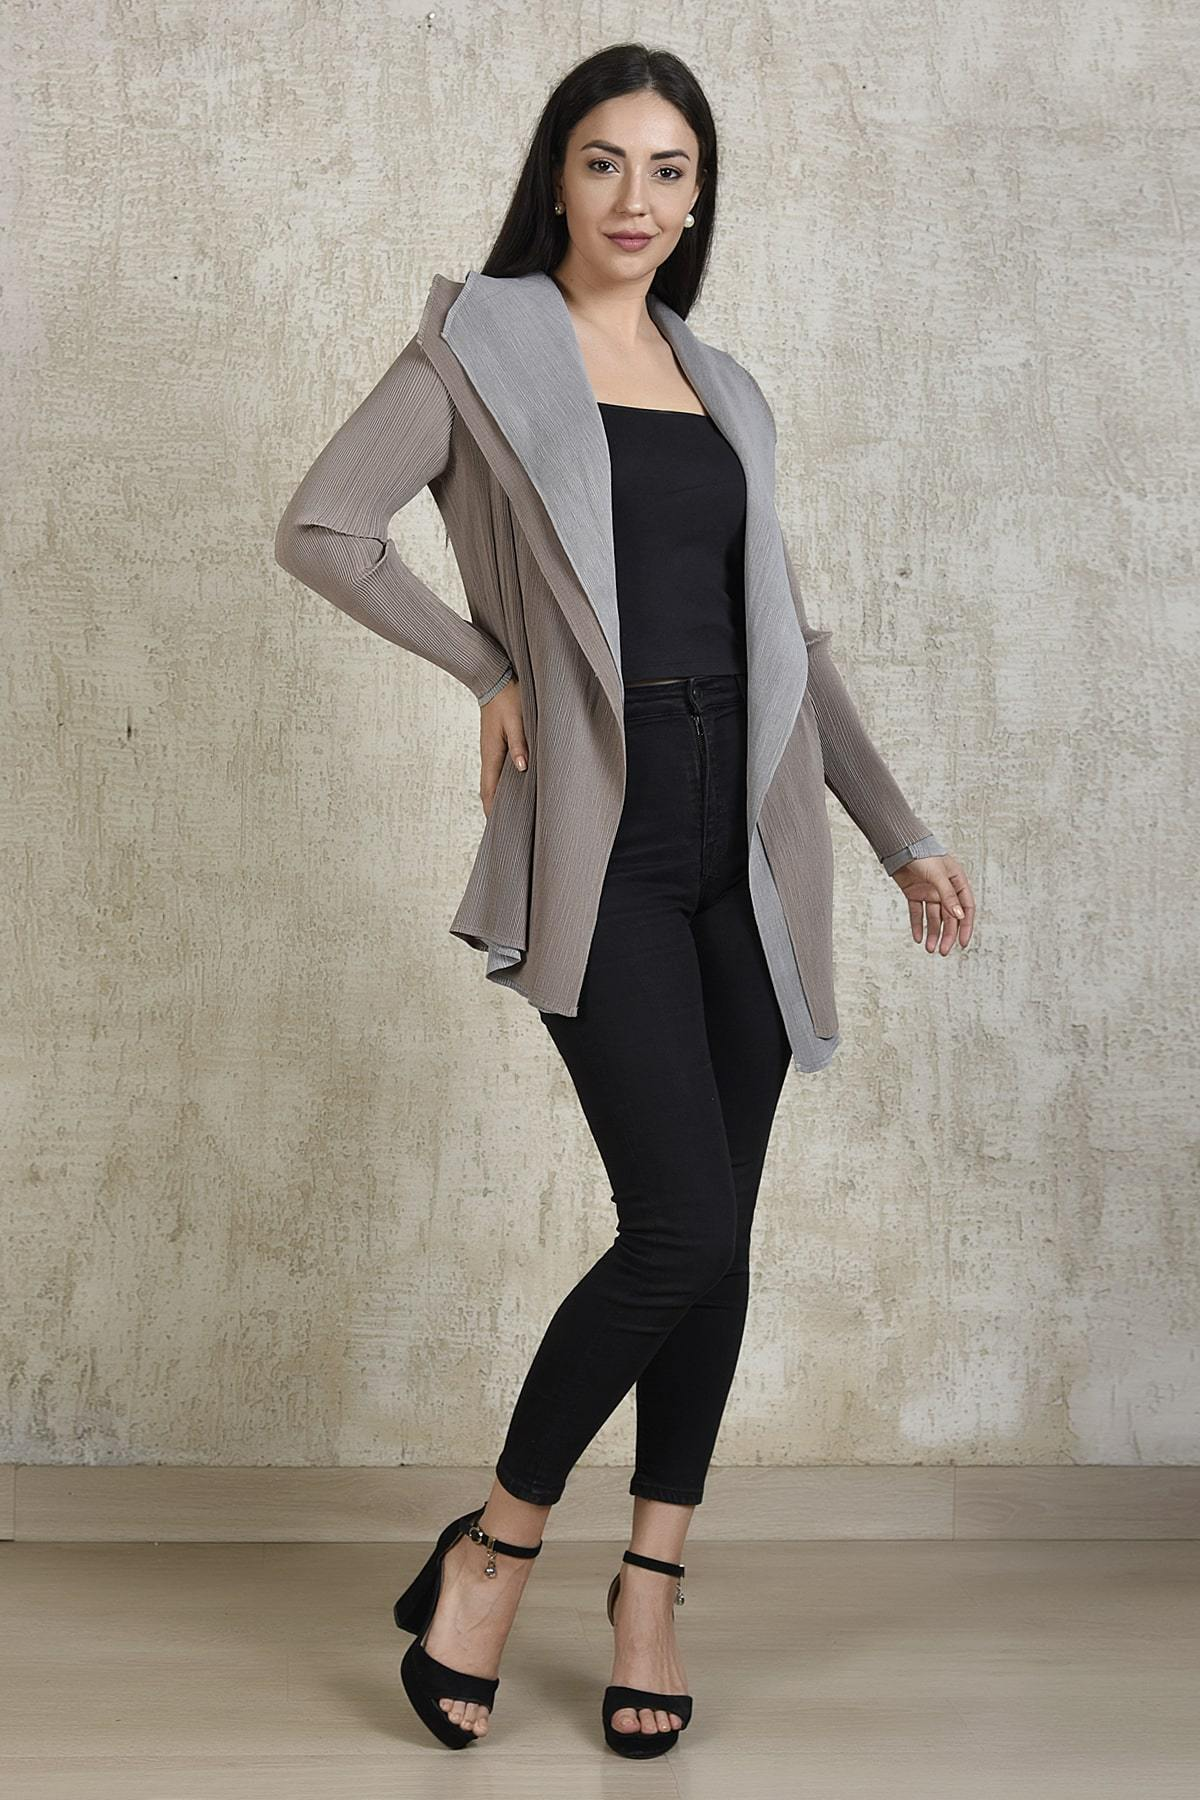 Tasuvure Jackets Reversible jacket in beige and grey